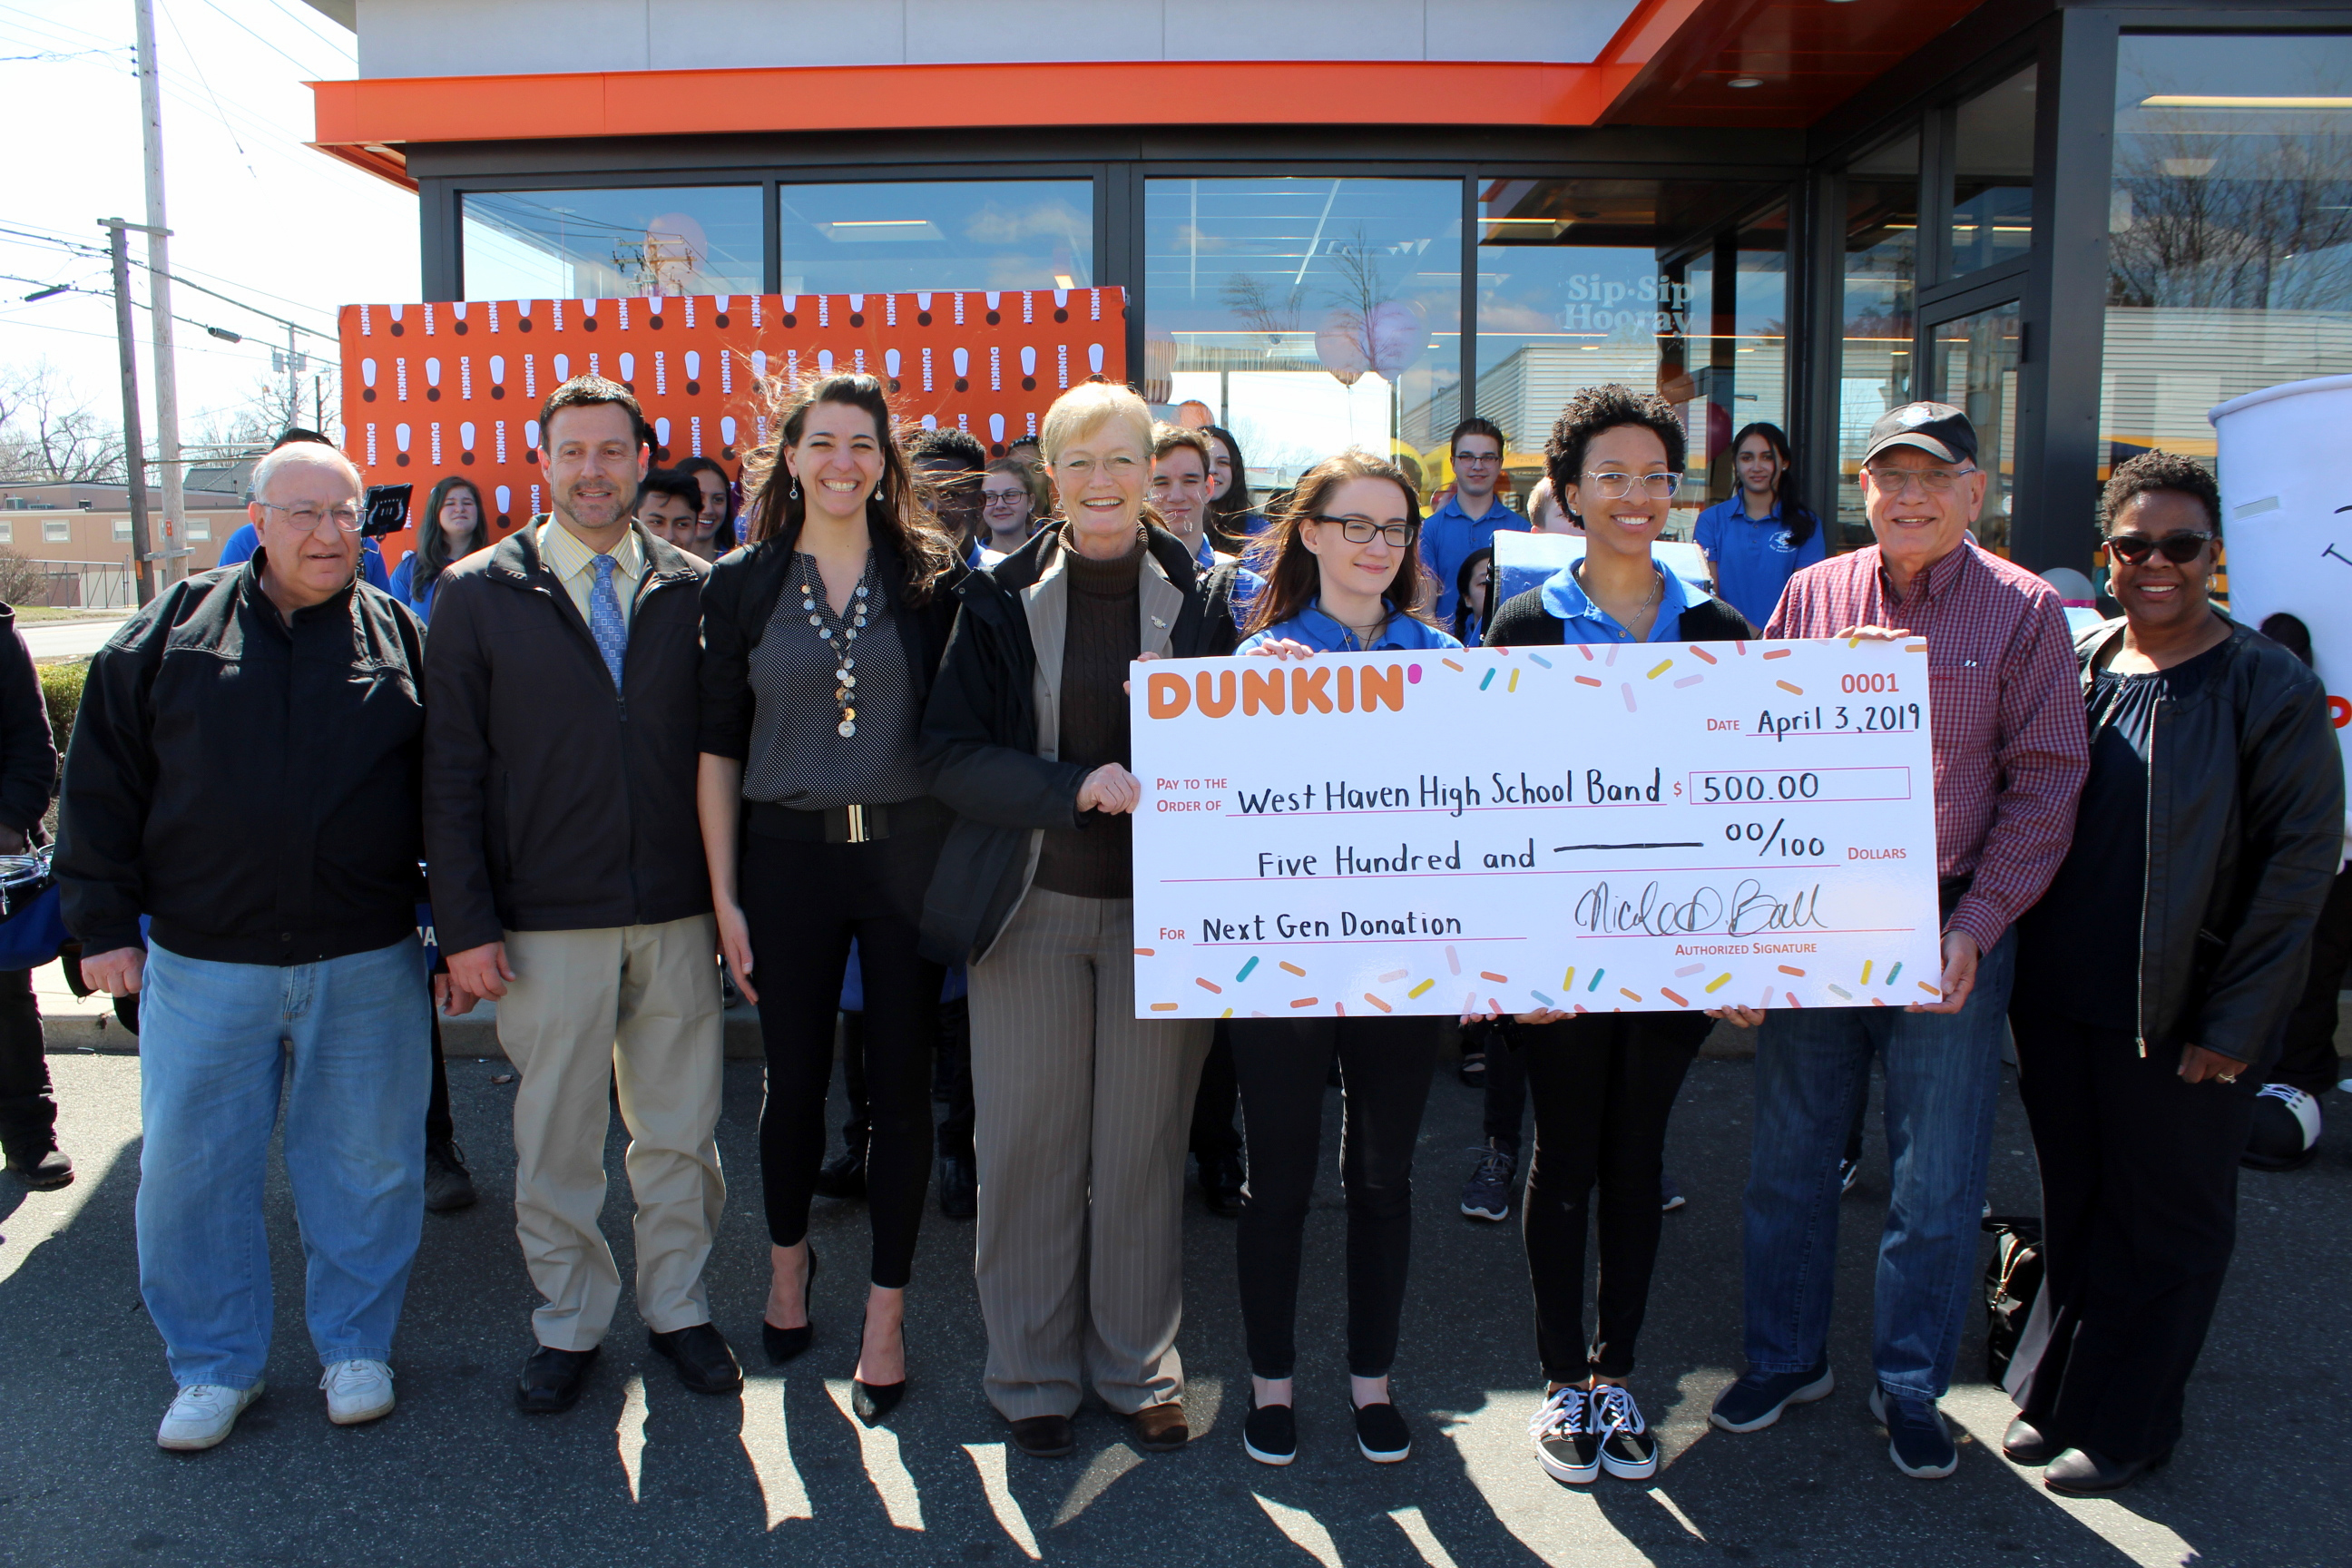 Rte. 1 Dunkin' Donuts reopens